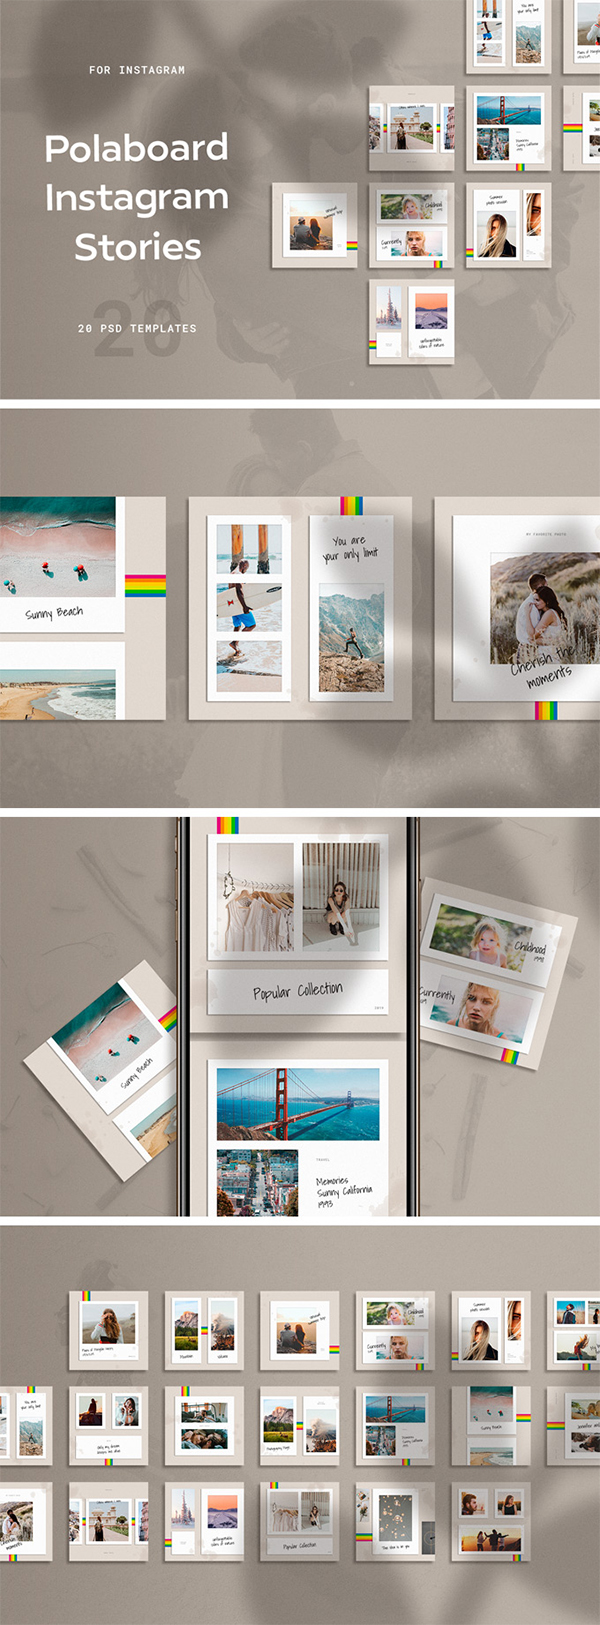 Polaboard Instagram Templates